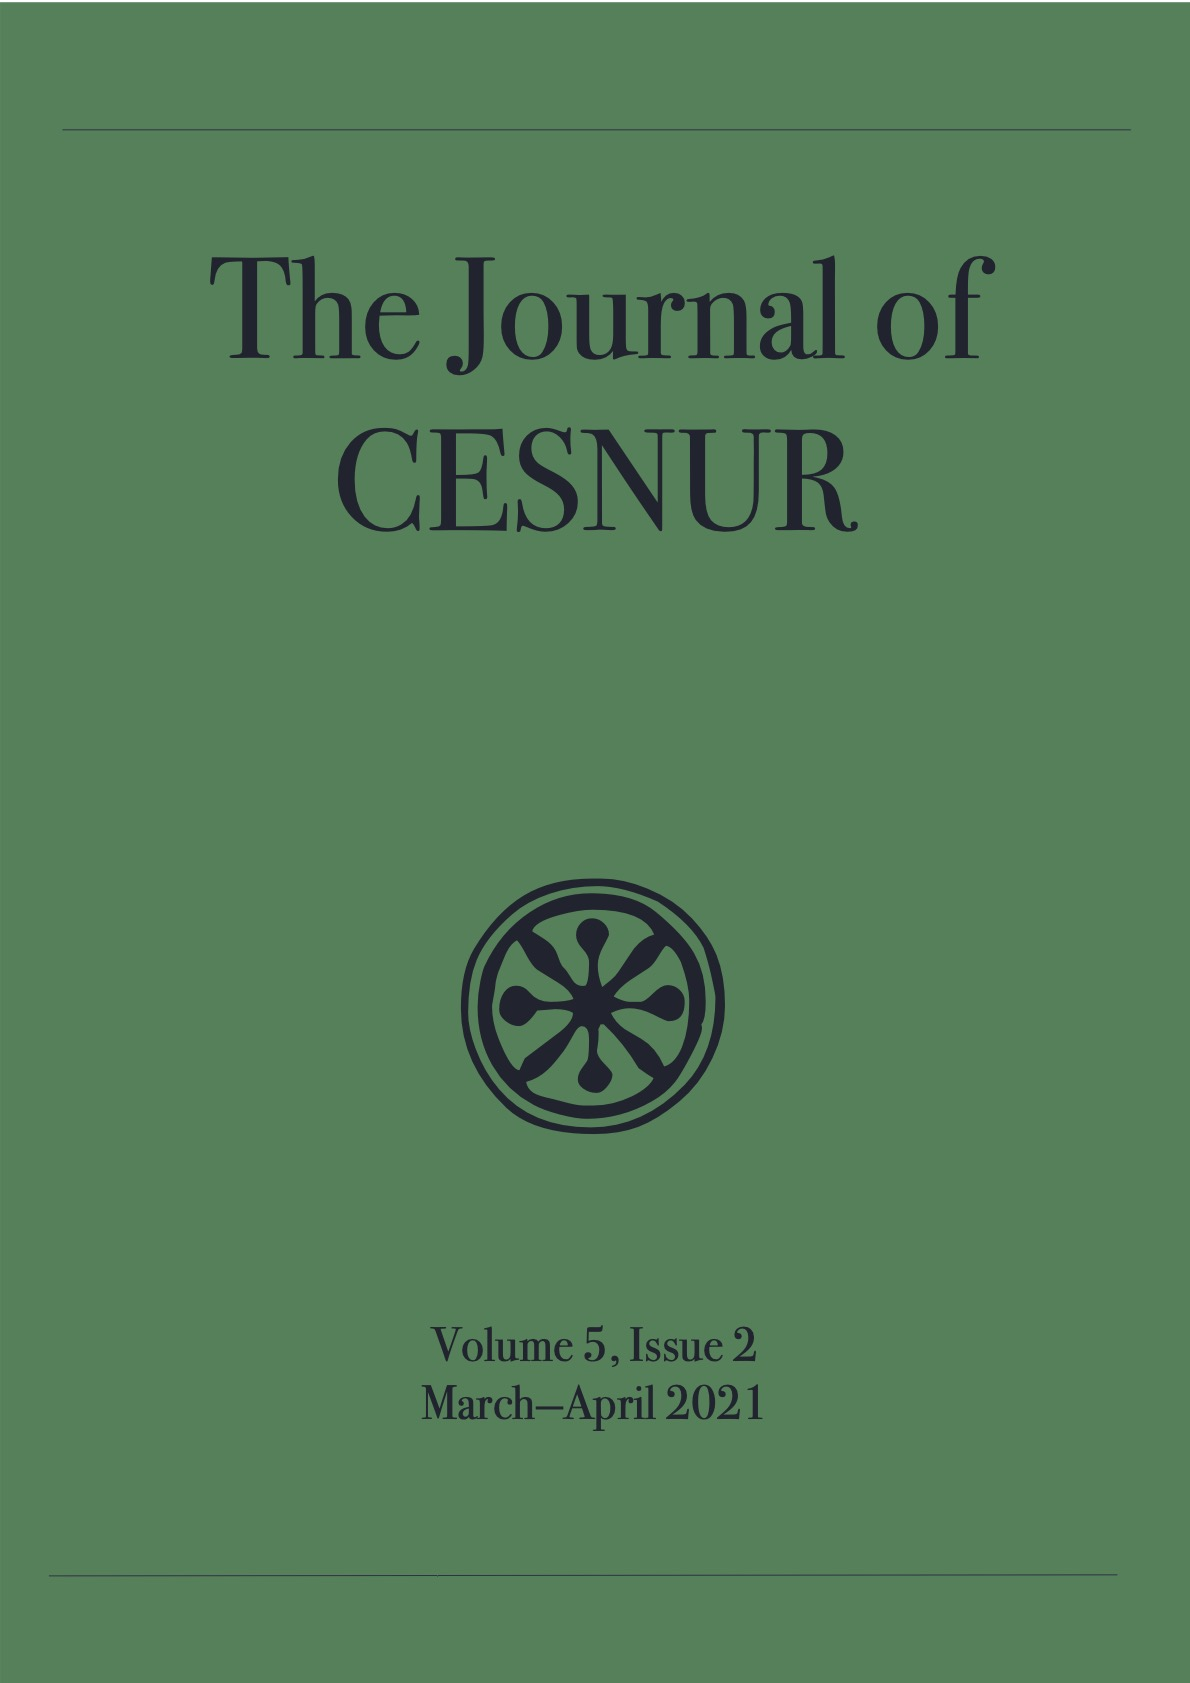 The Journal of Cesnur Volume 5 Issue 2 cover